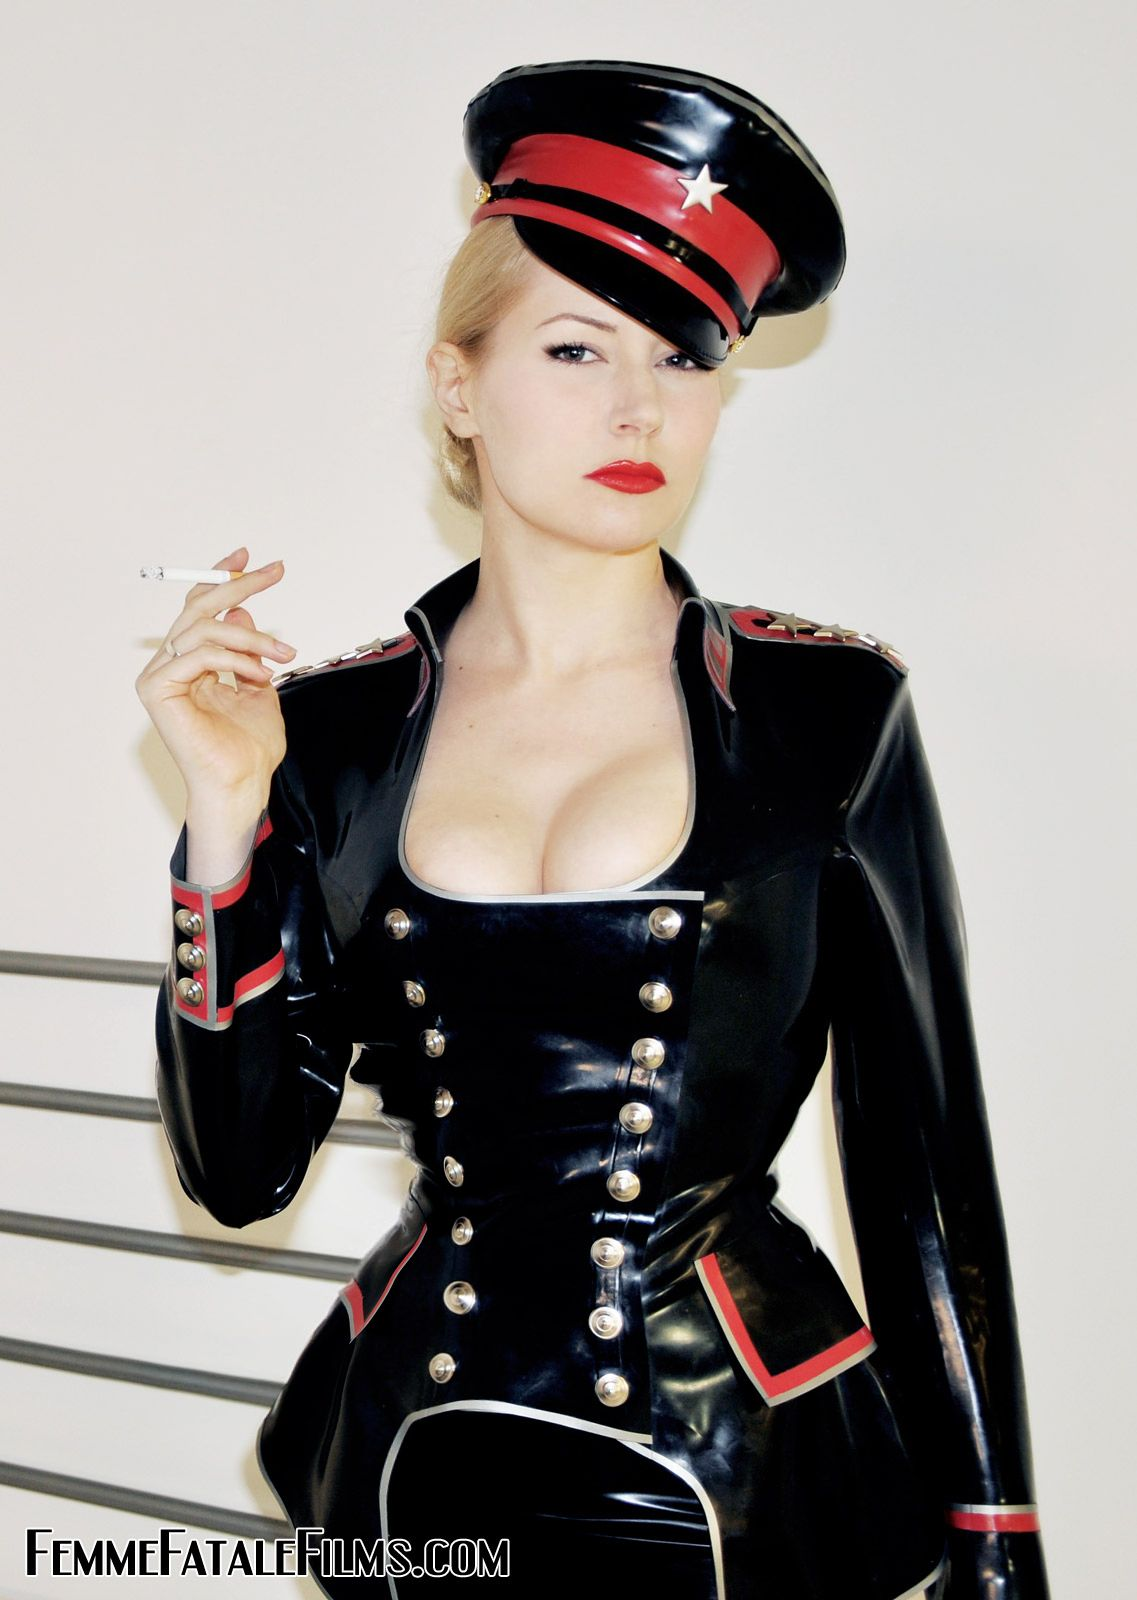 Mistress Eleise Inspired by Mistress Eleise : Photo